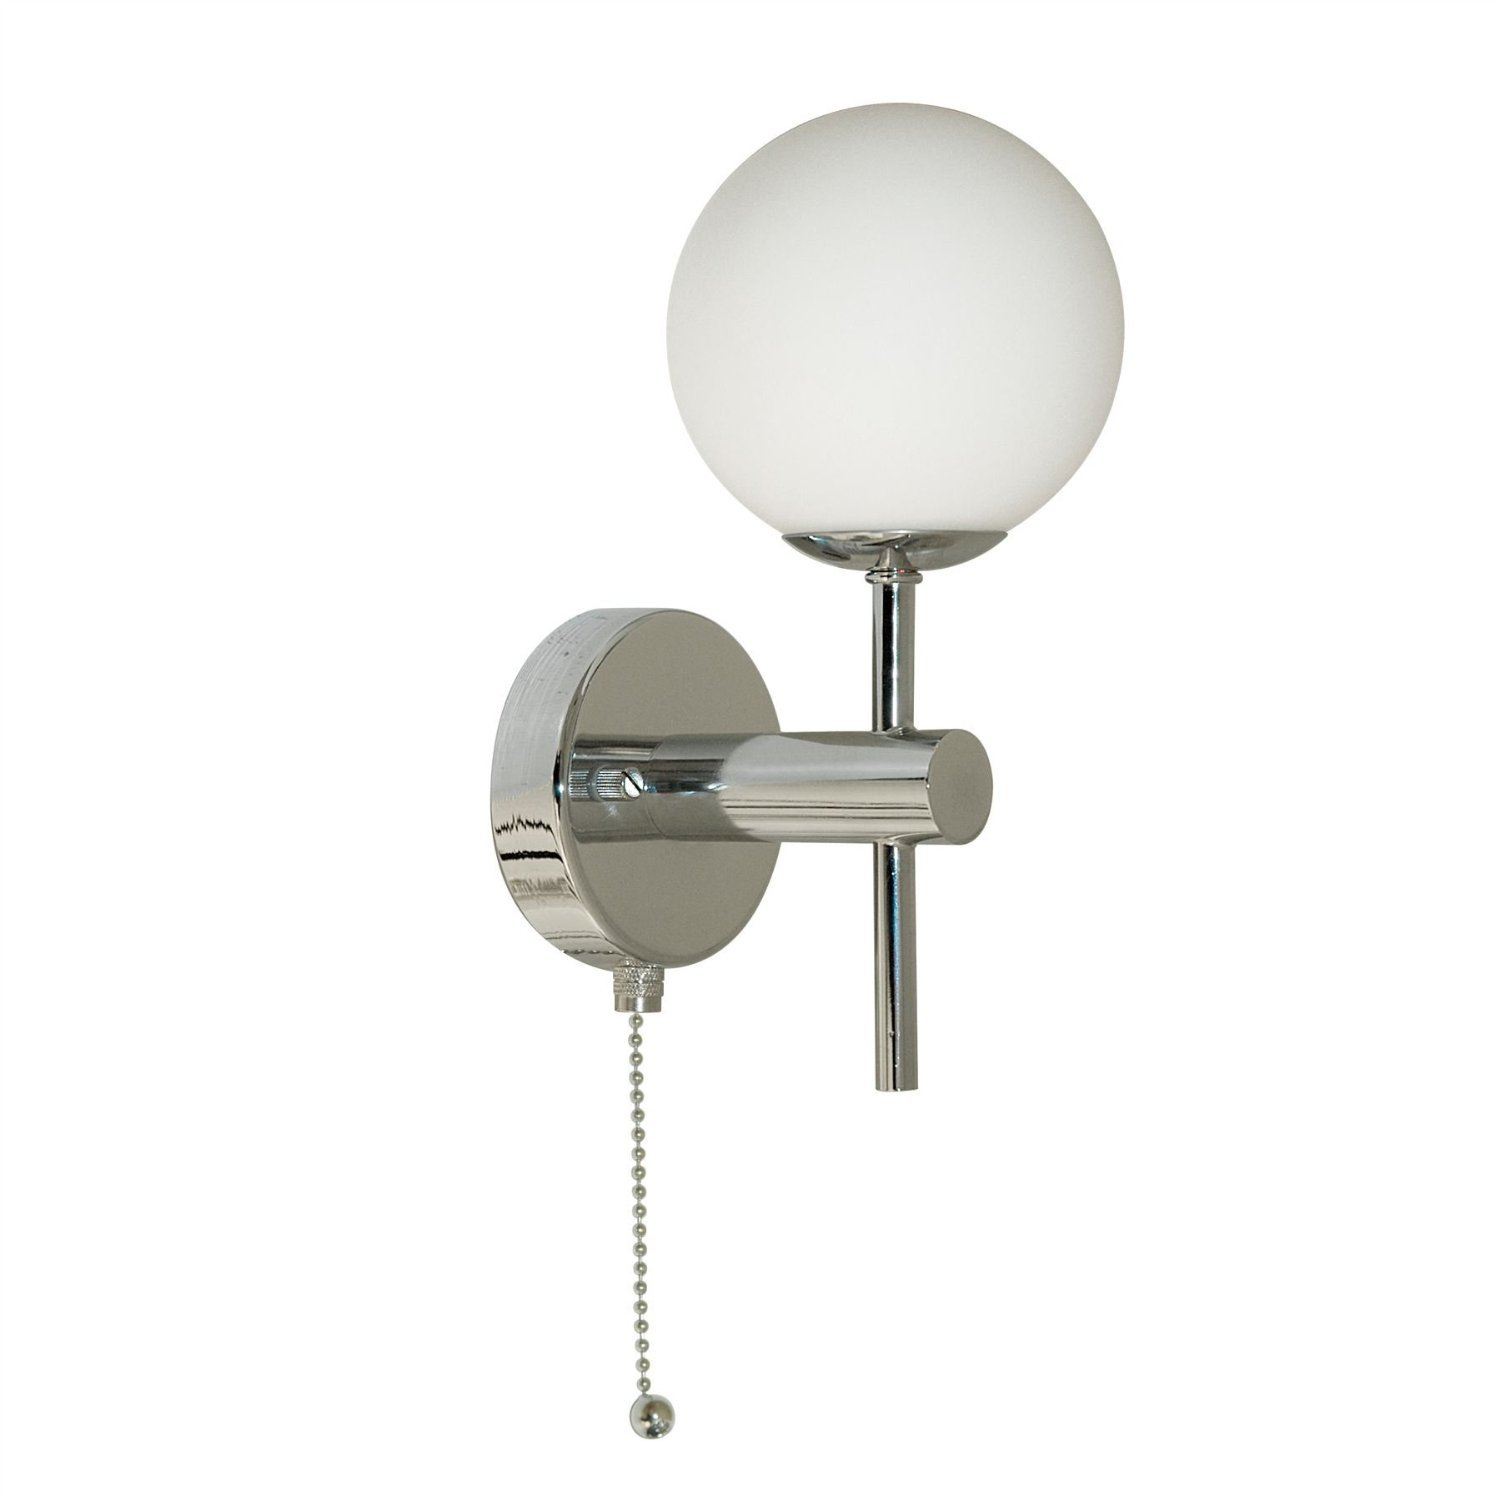 Bathroom Globe Chrome Finish Wall Light with Pull Switch, IP44 Rated, 4337-1 Searchlight 4337-1-LED